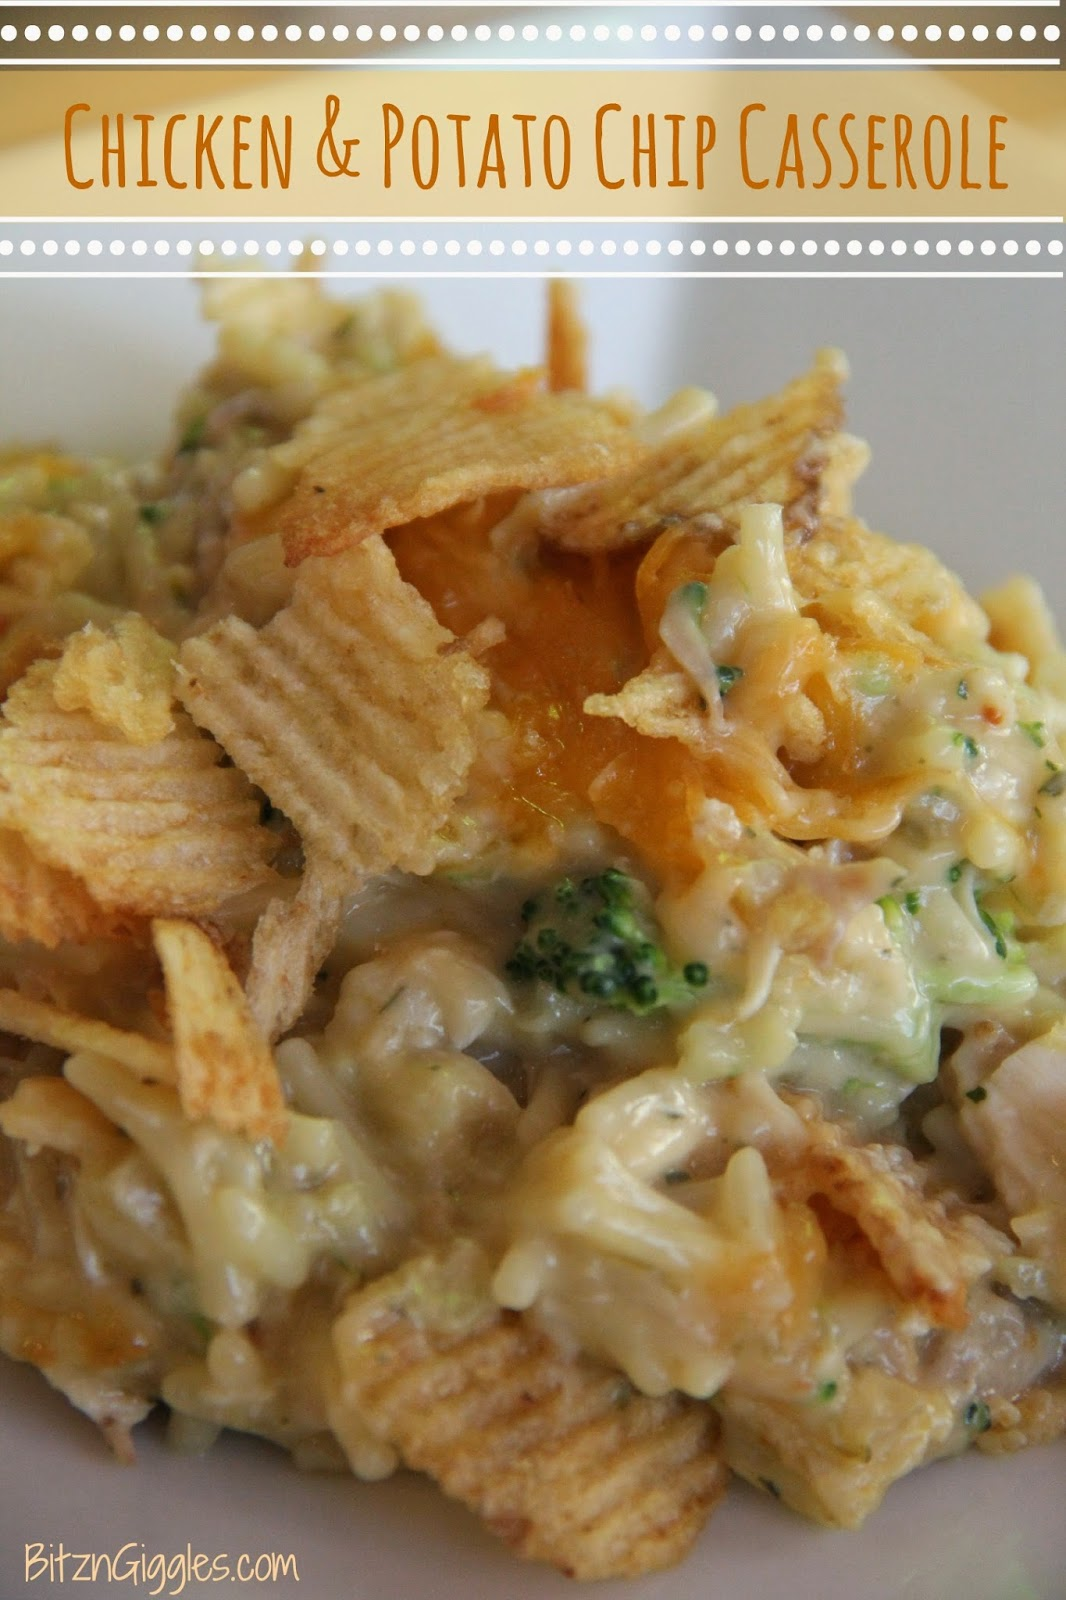 https://www.bitzngiggles.com/2014/04/chicken-potato-chip-casserole.html